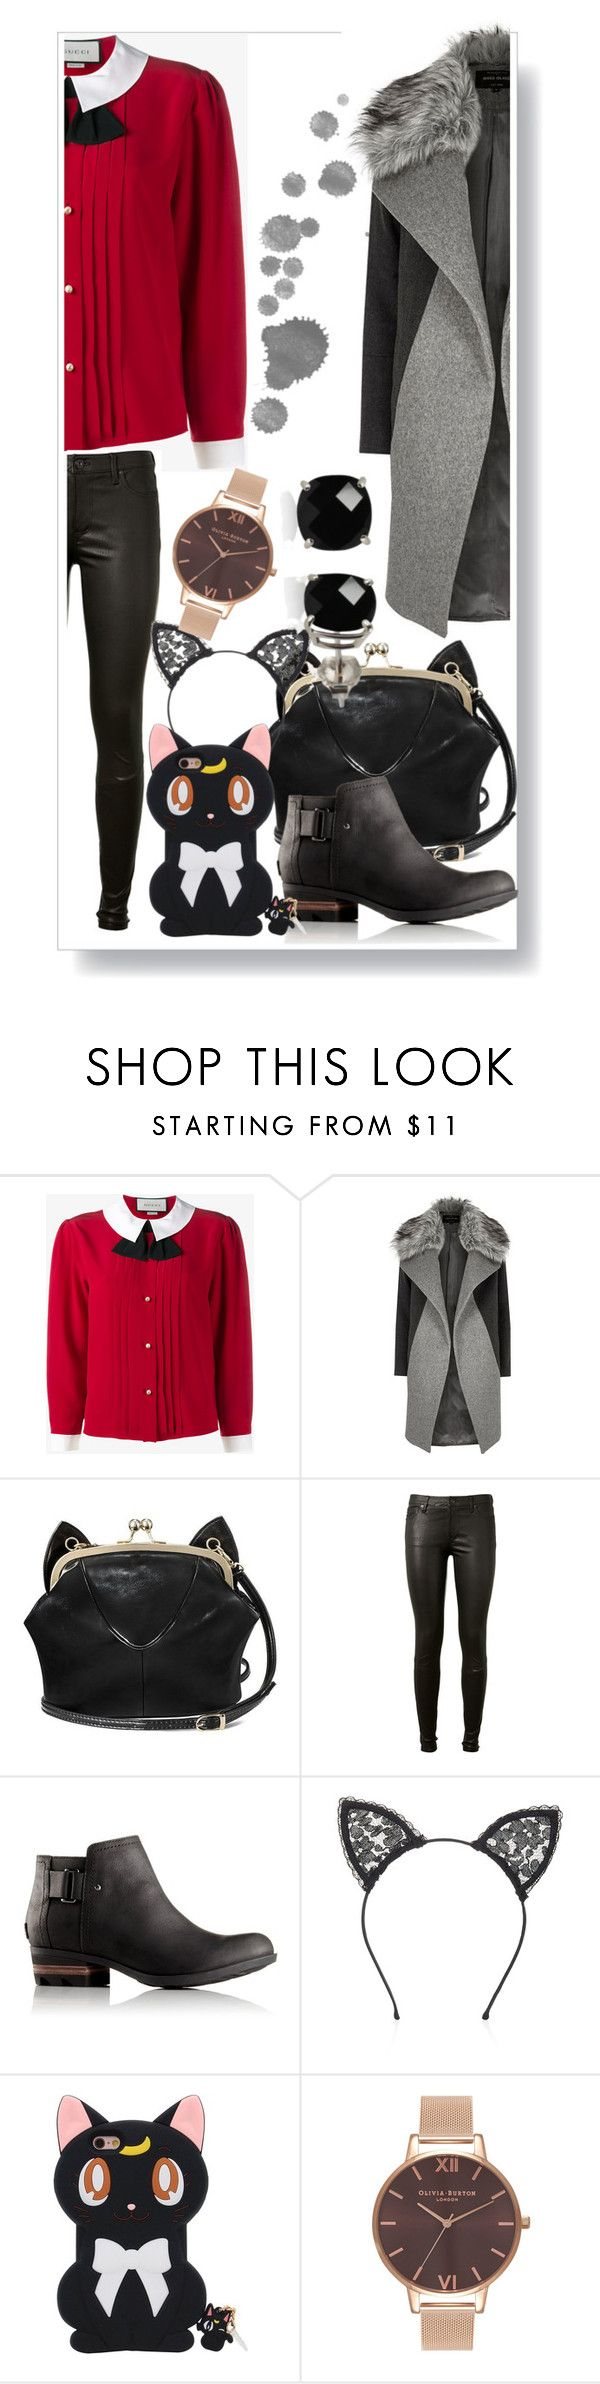 """""""work"""" by frupapp on Polyvore featuring Gucci, River Island, AG Adriano Goldschmied, SOREL, Fleur du Mal, Olivia Burton, Belk & Co., StreetStyle, school and Work"""